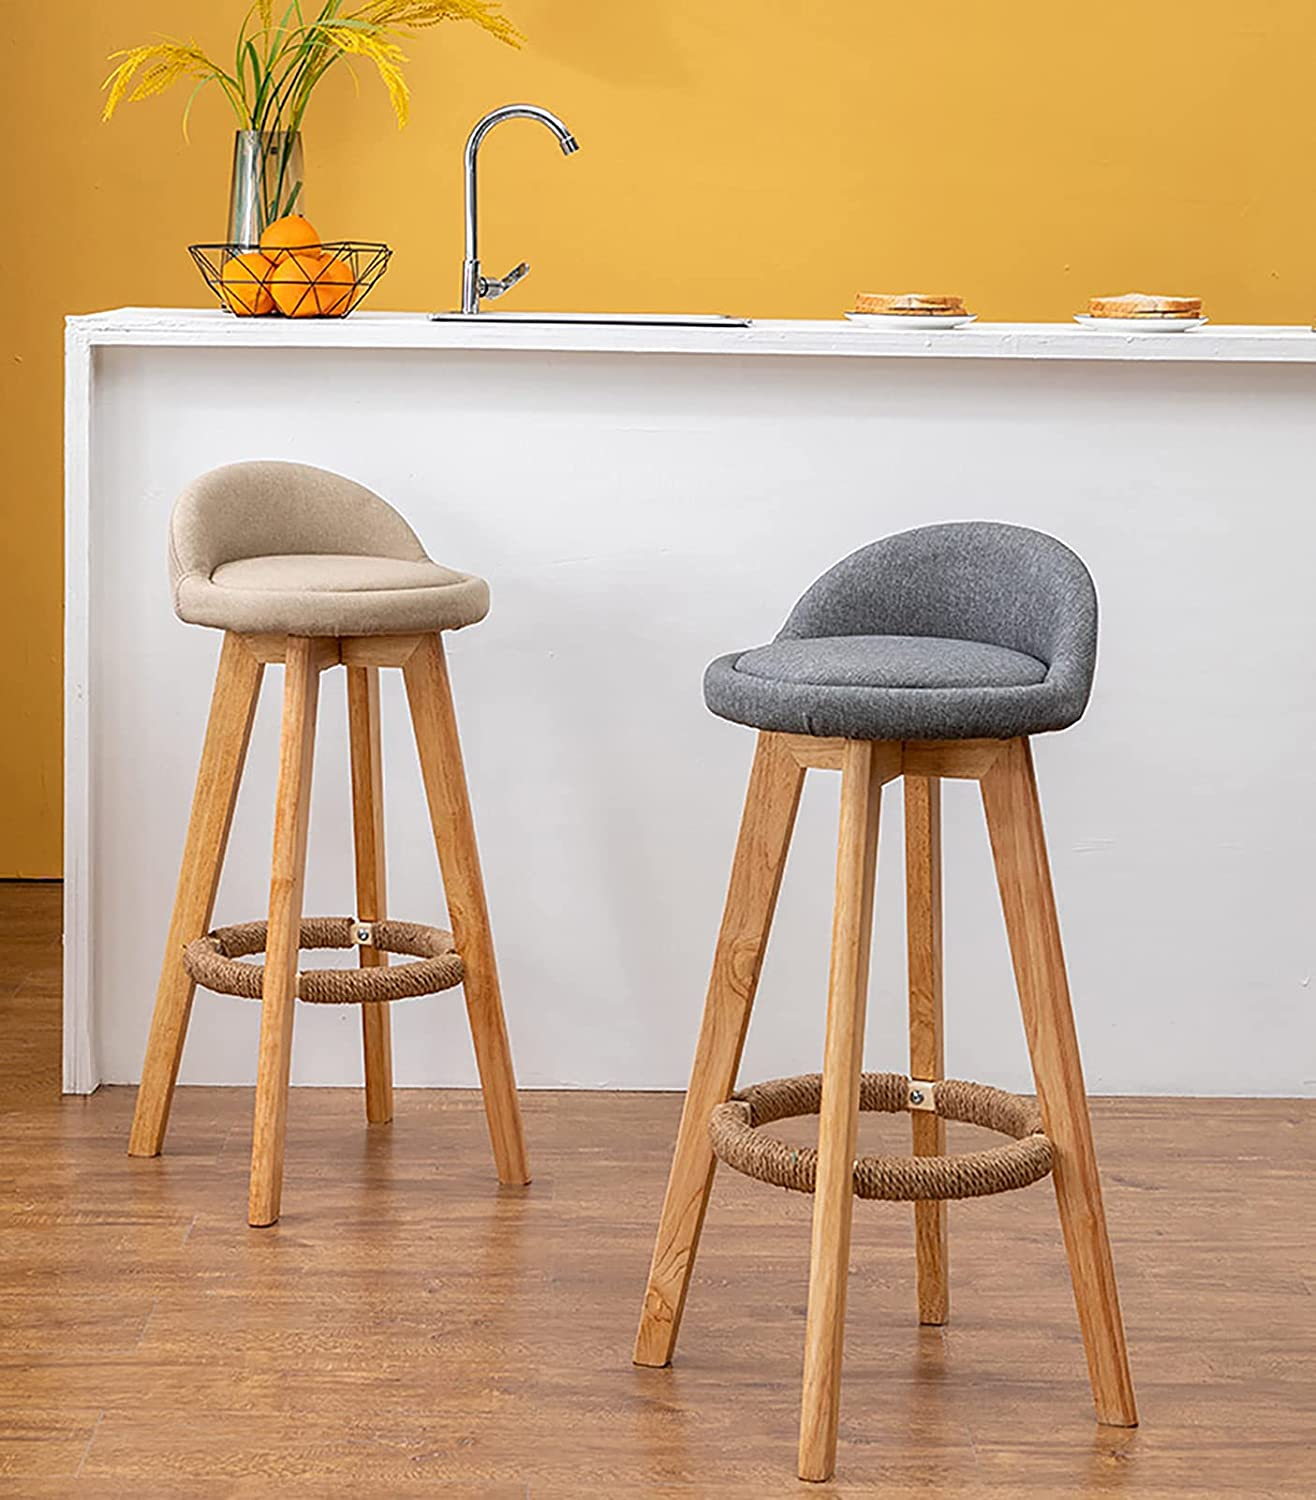 Rotating High Stool Credence Backrest Latest item Bar Chair Nordic Front Wood Solid D